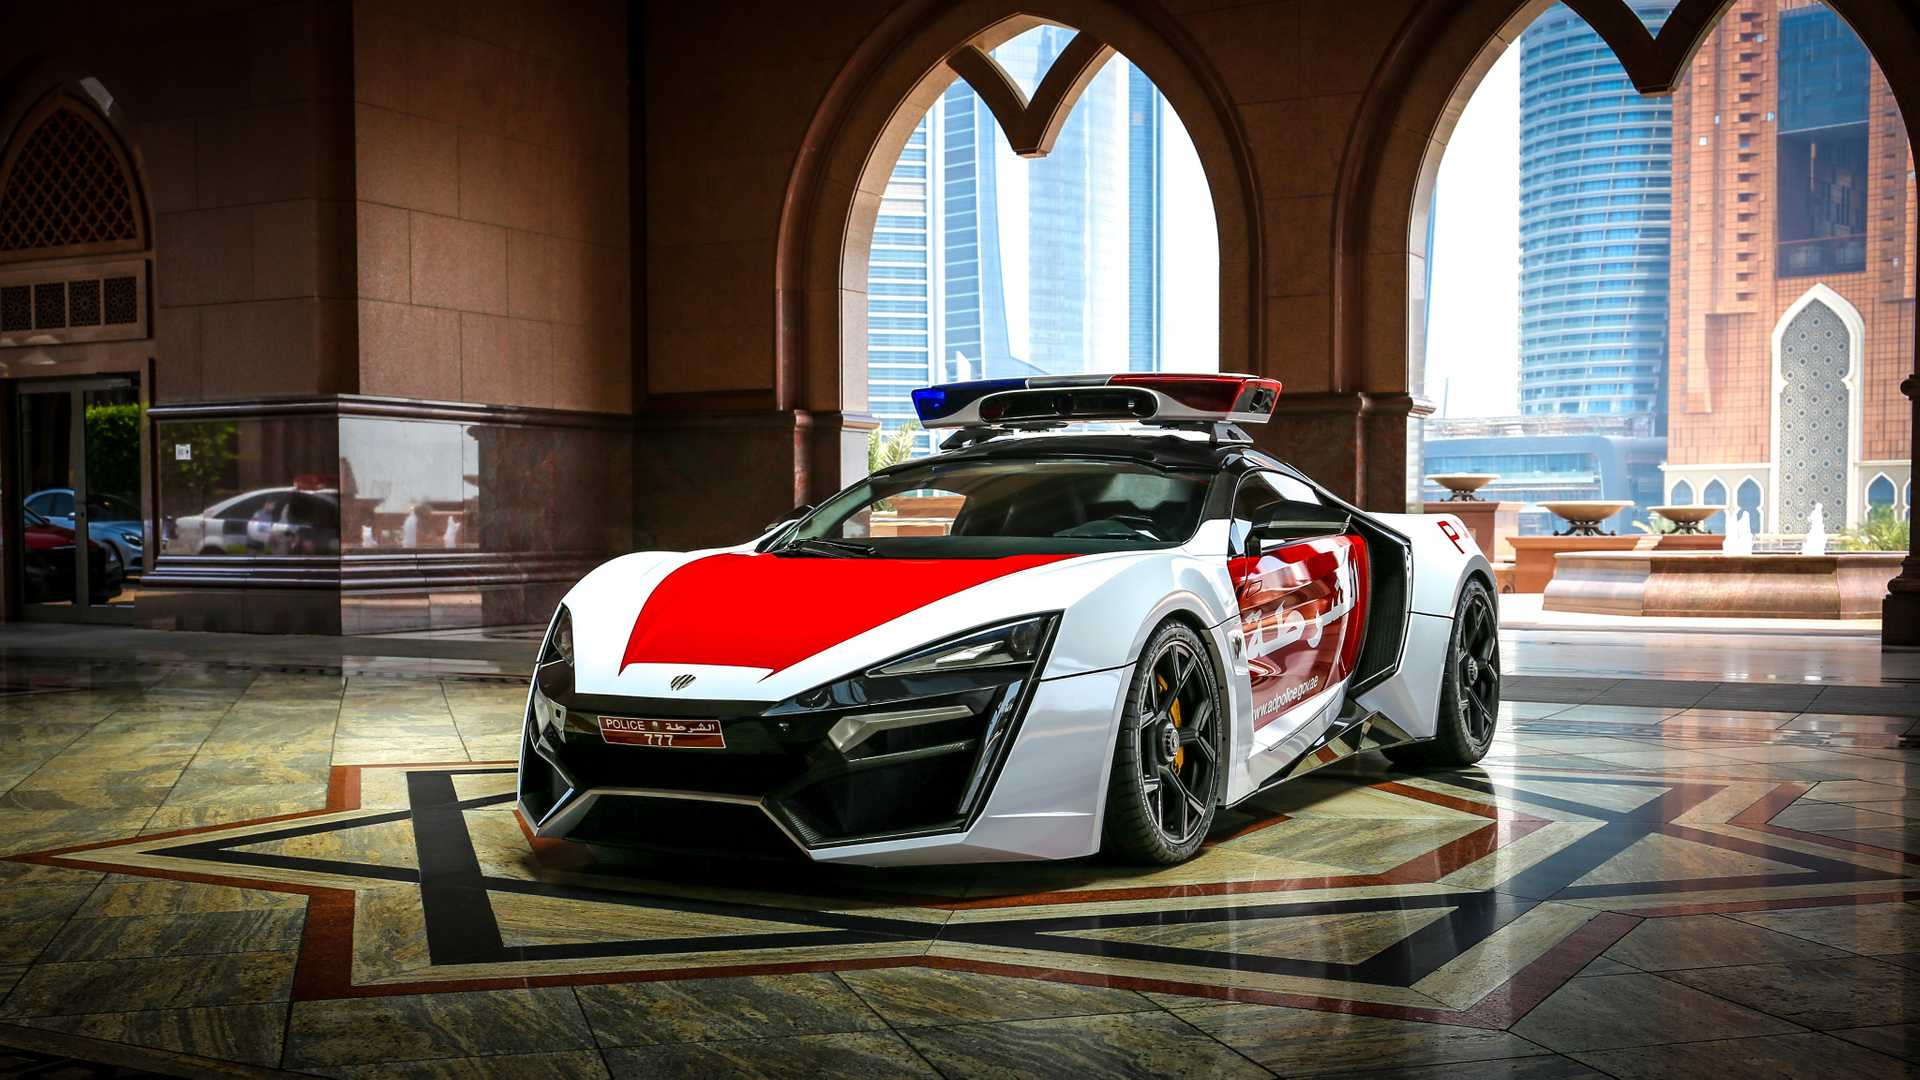 lykan-hypersport-for-abu-dhabi-police-2